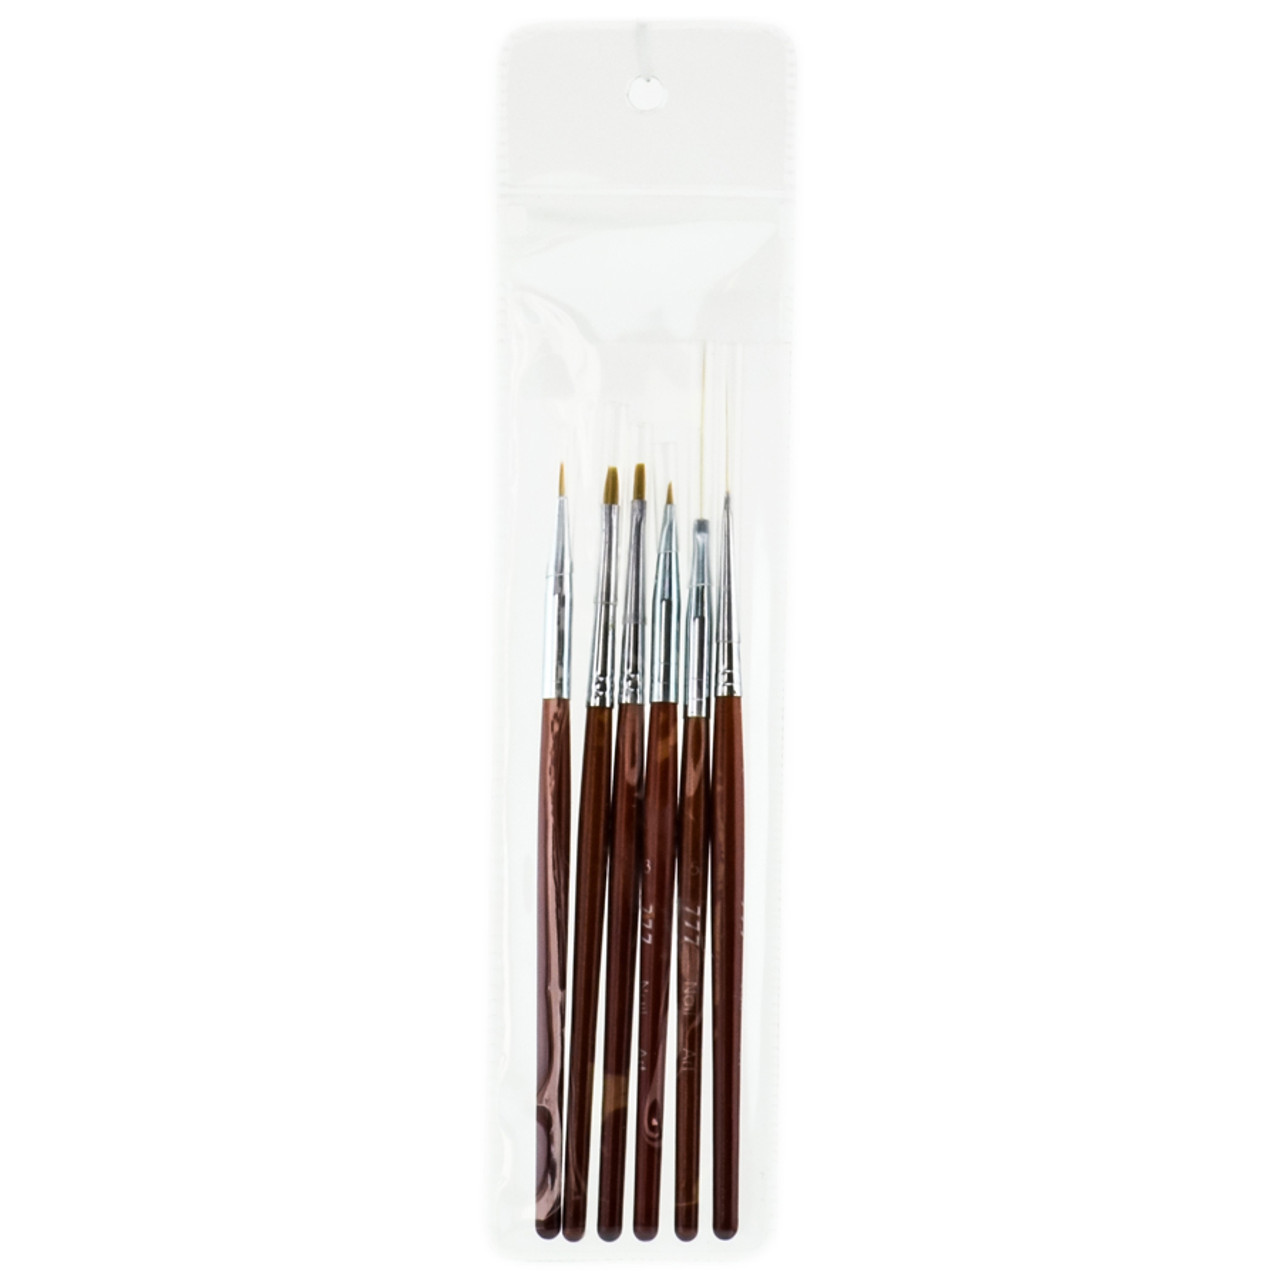 777 nail art design brush set formerly for Avon nail decoration brush